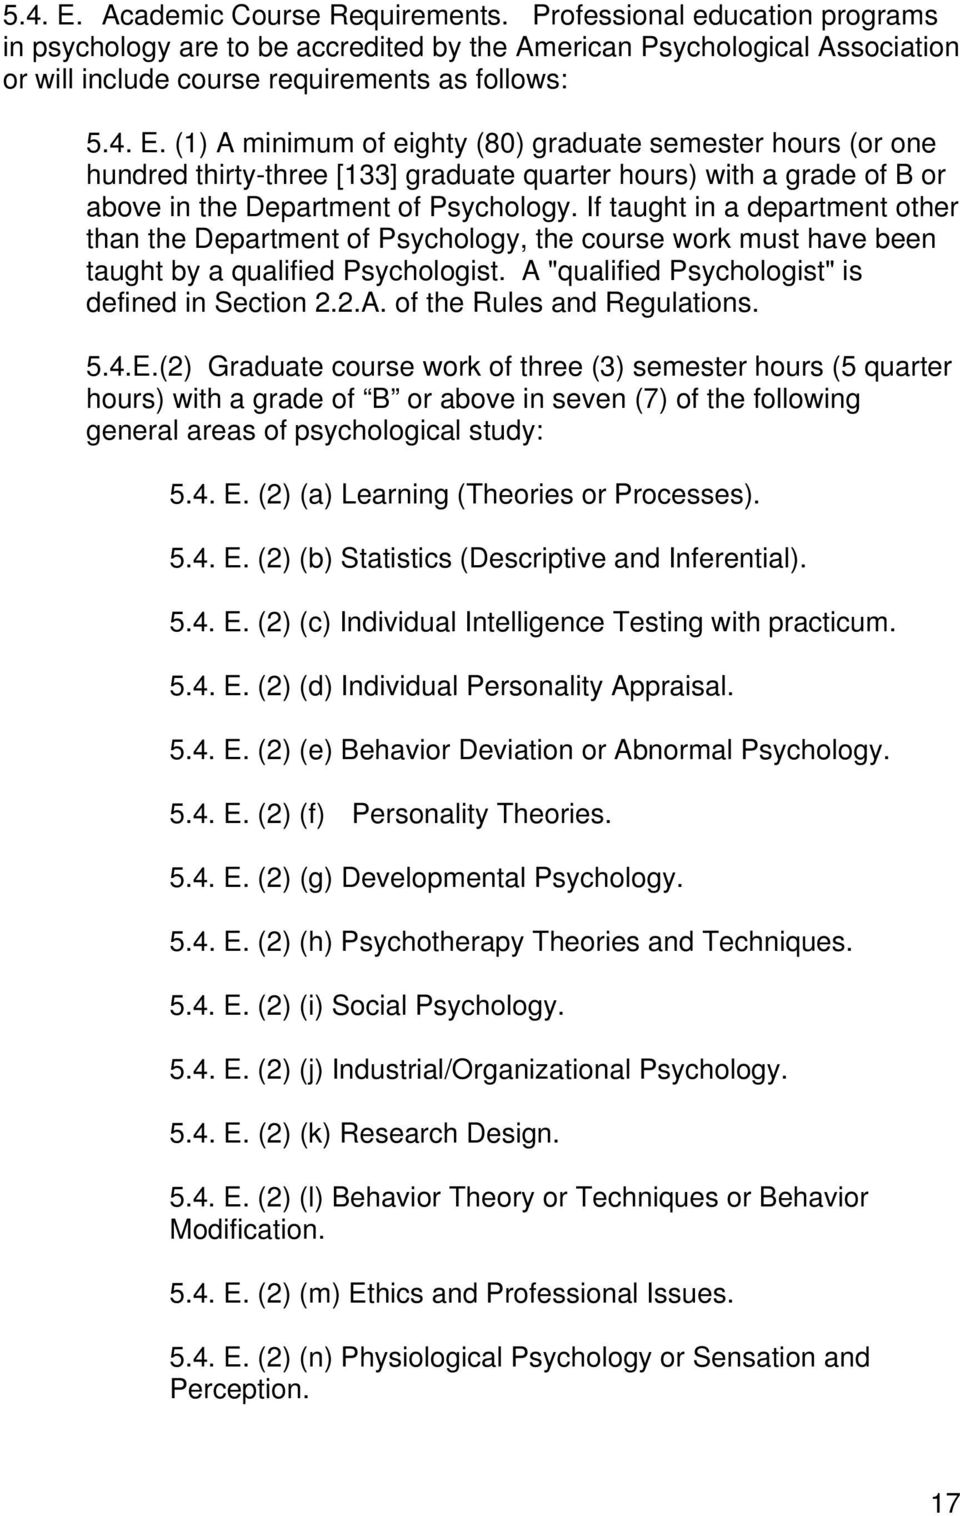 5.4.E.(2) Graduate course work of three (3) semester hours (5 quarter hours) with a grade of B or above in seven (7) of the following general areas of psychological study: 5.4. E.